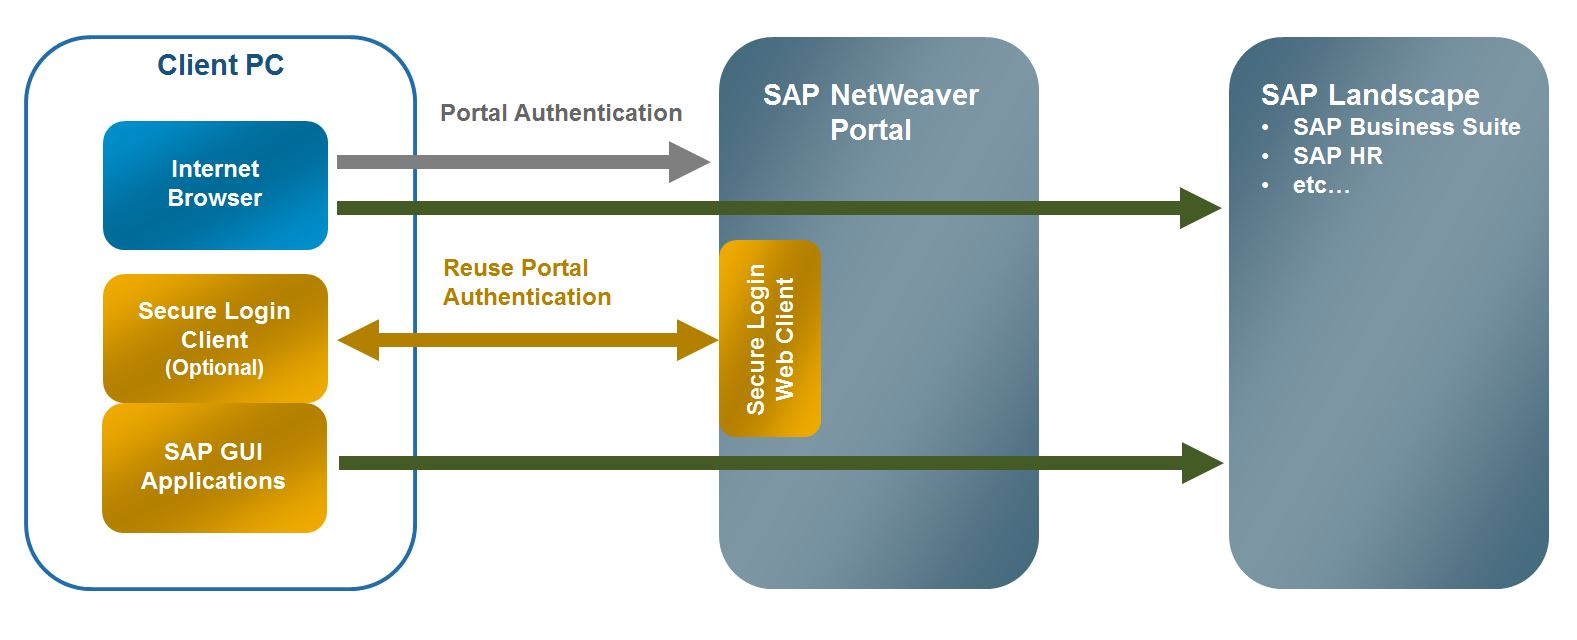 sap netweaver Learn sap netweavertutorials, free online training material for beginners, free online tutorial course, in simple and easy steps starting from basic to advanced concepts with examples.